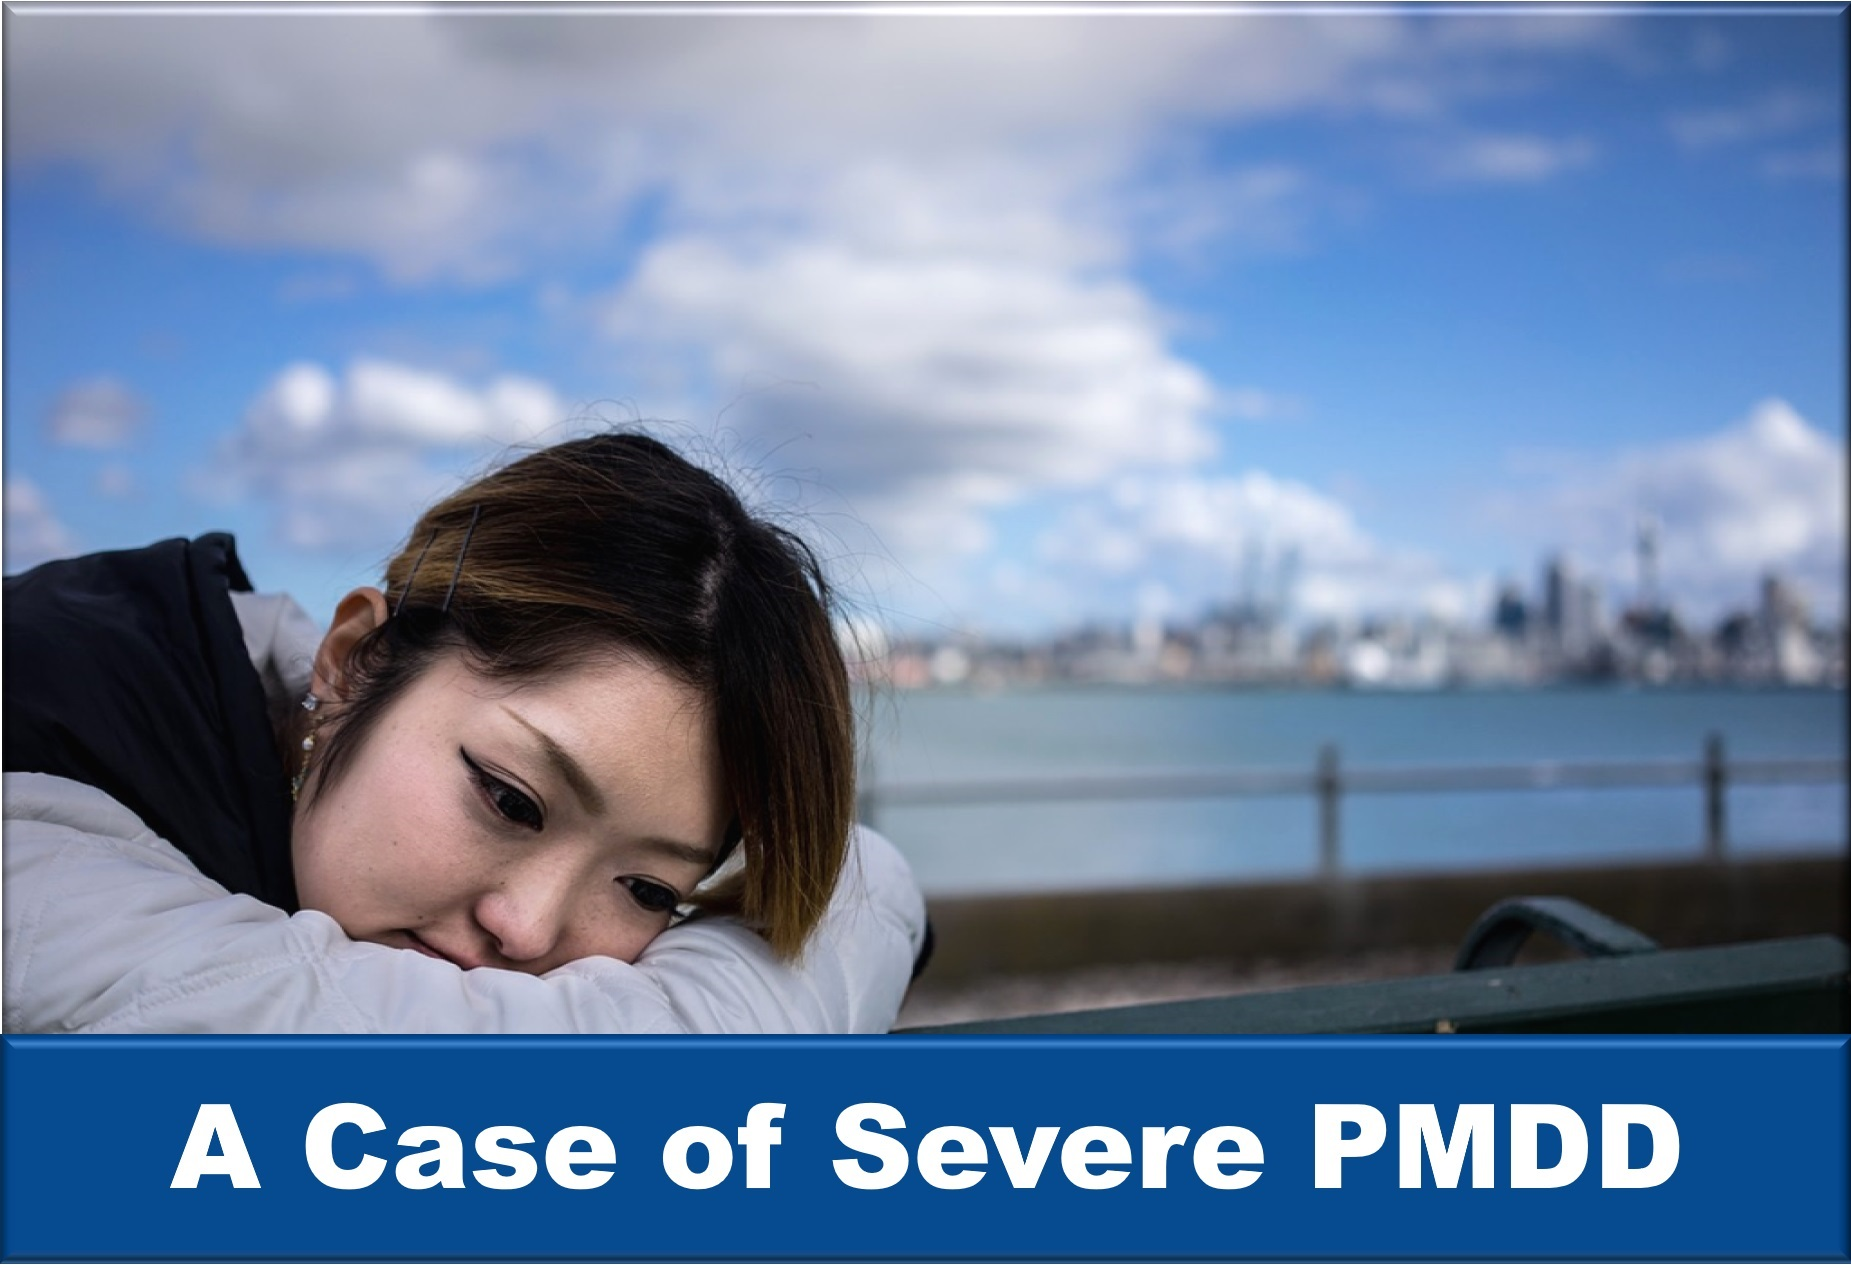 A Case of Severe PMDD